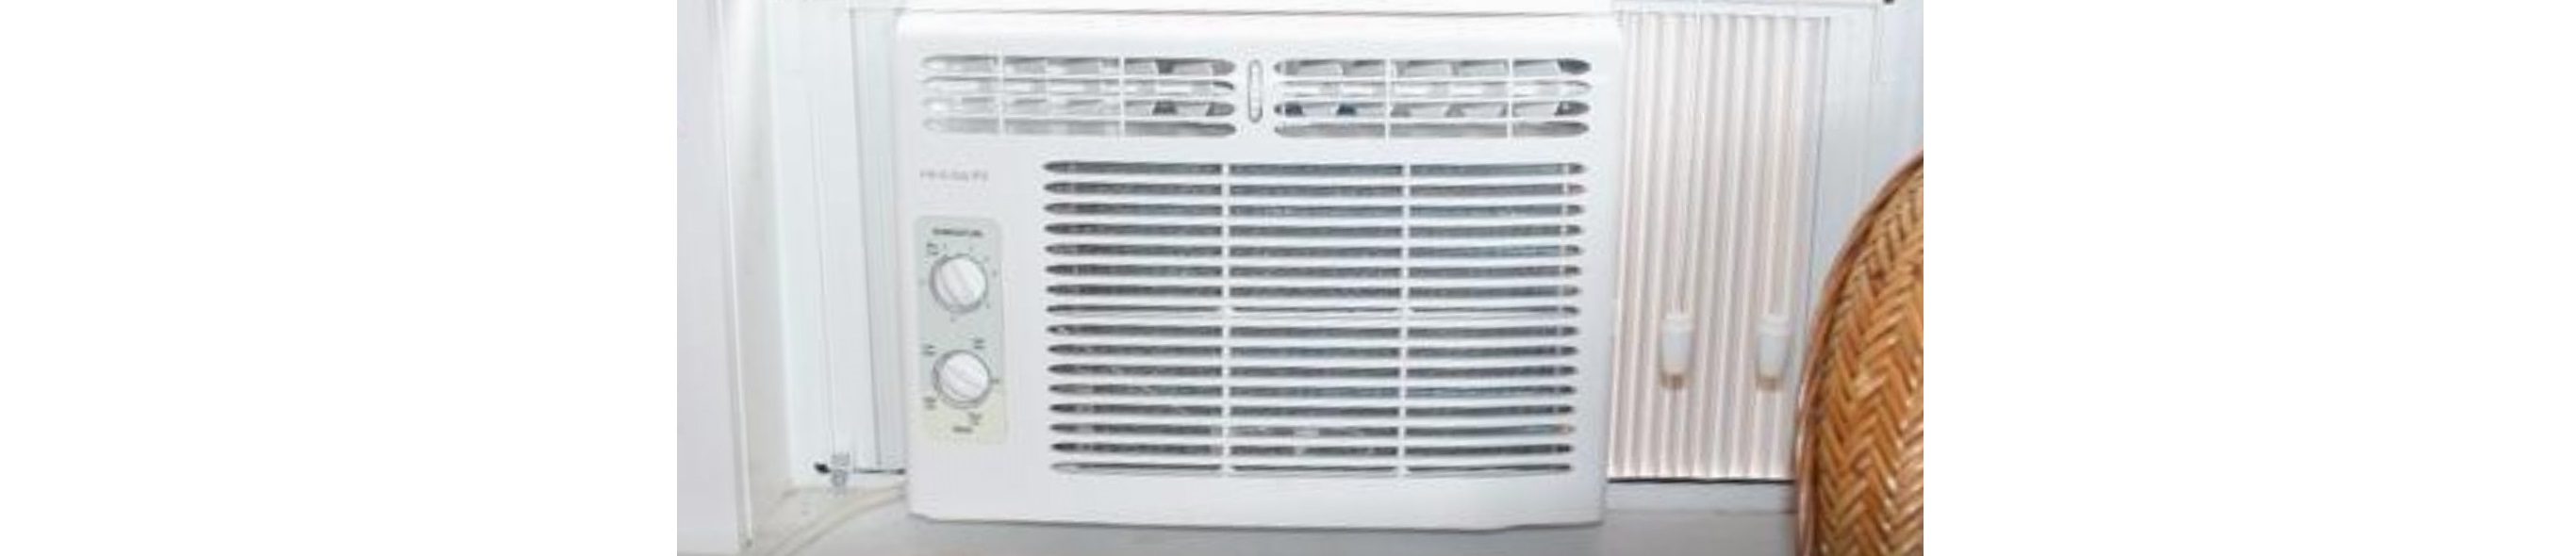 Frigidaire FFRA0511R1 Window Air Conditioner Review